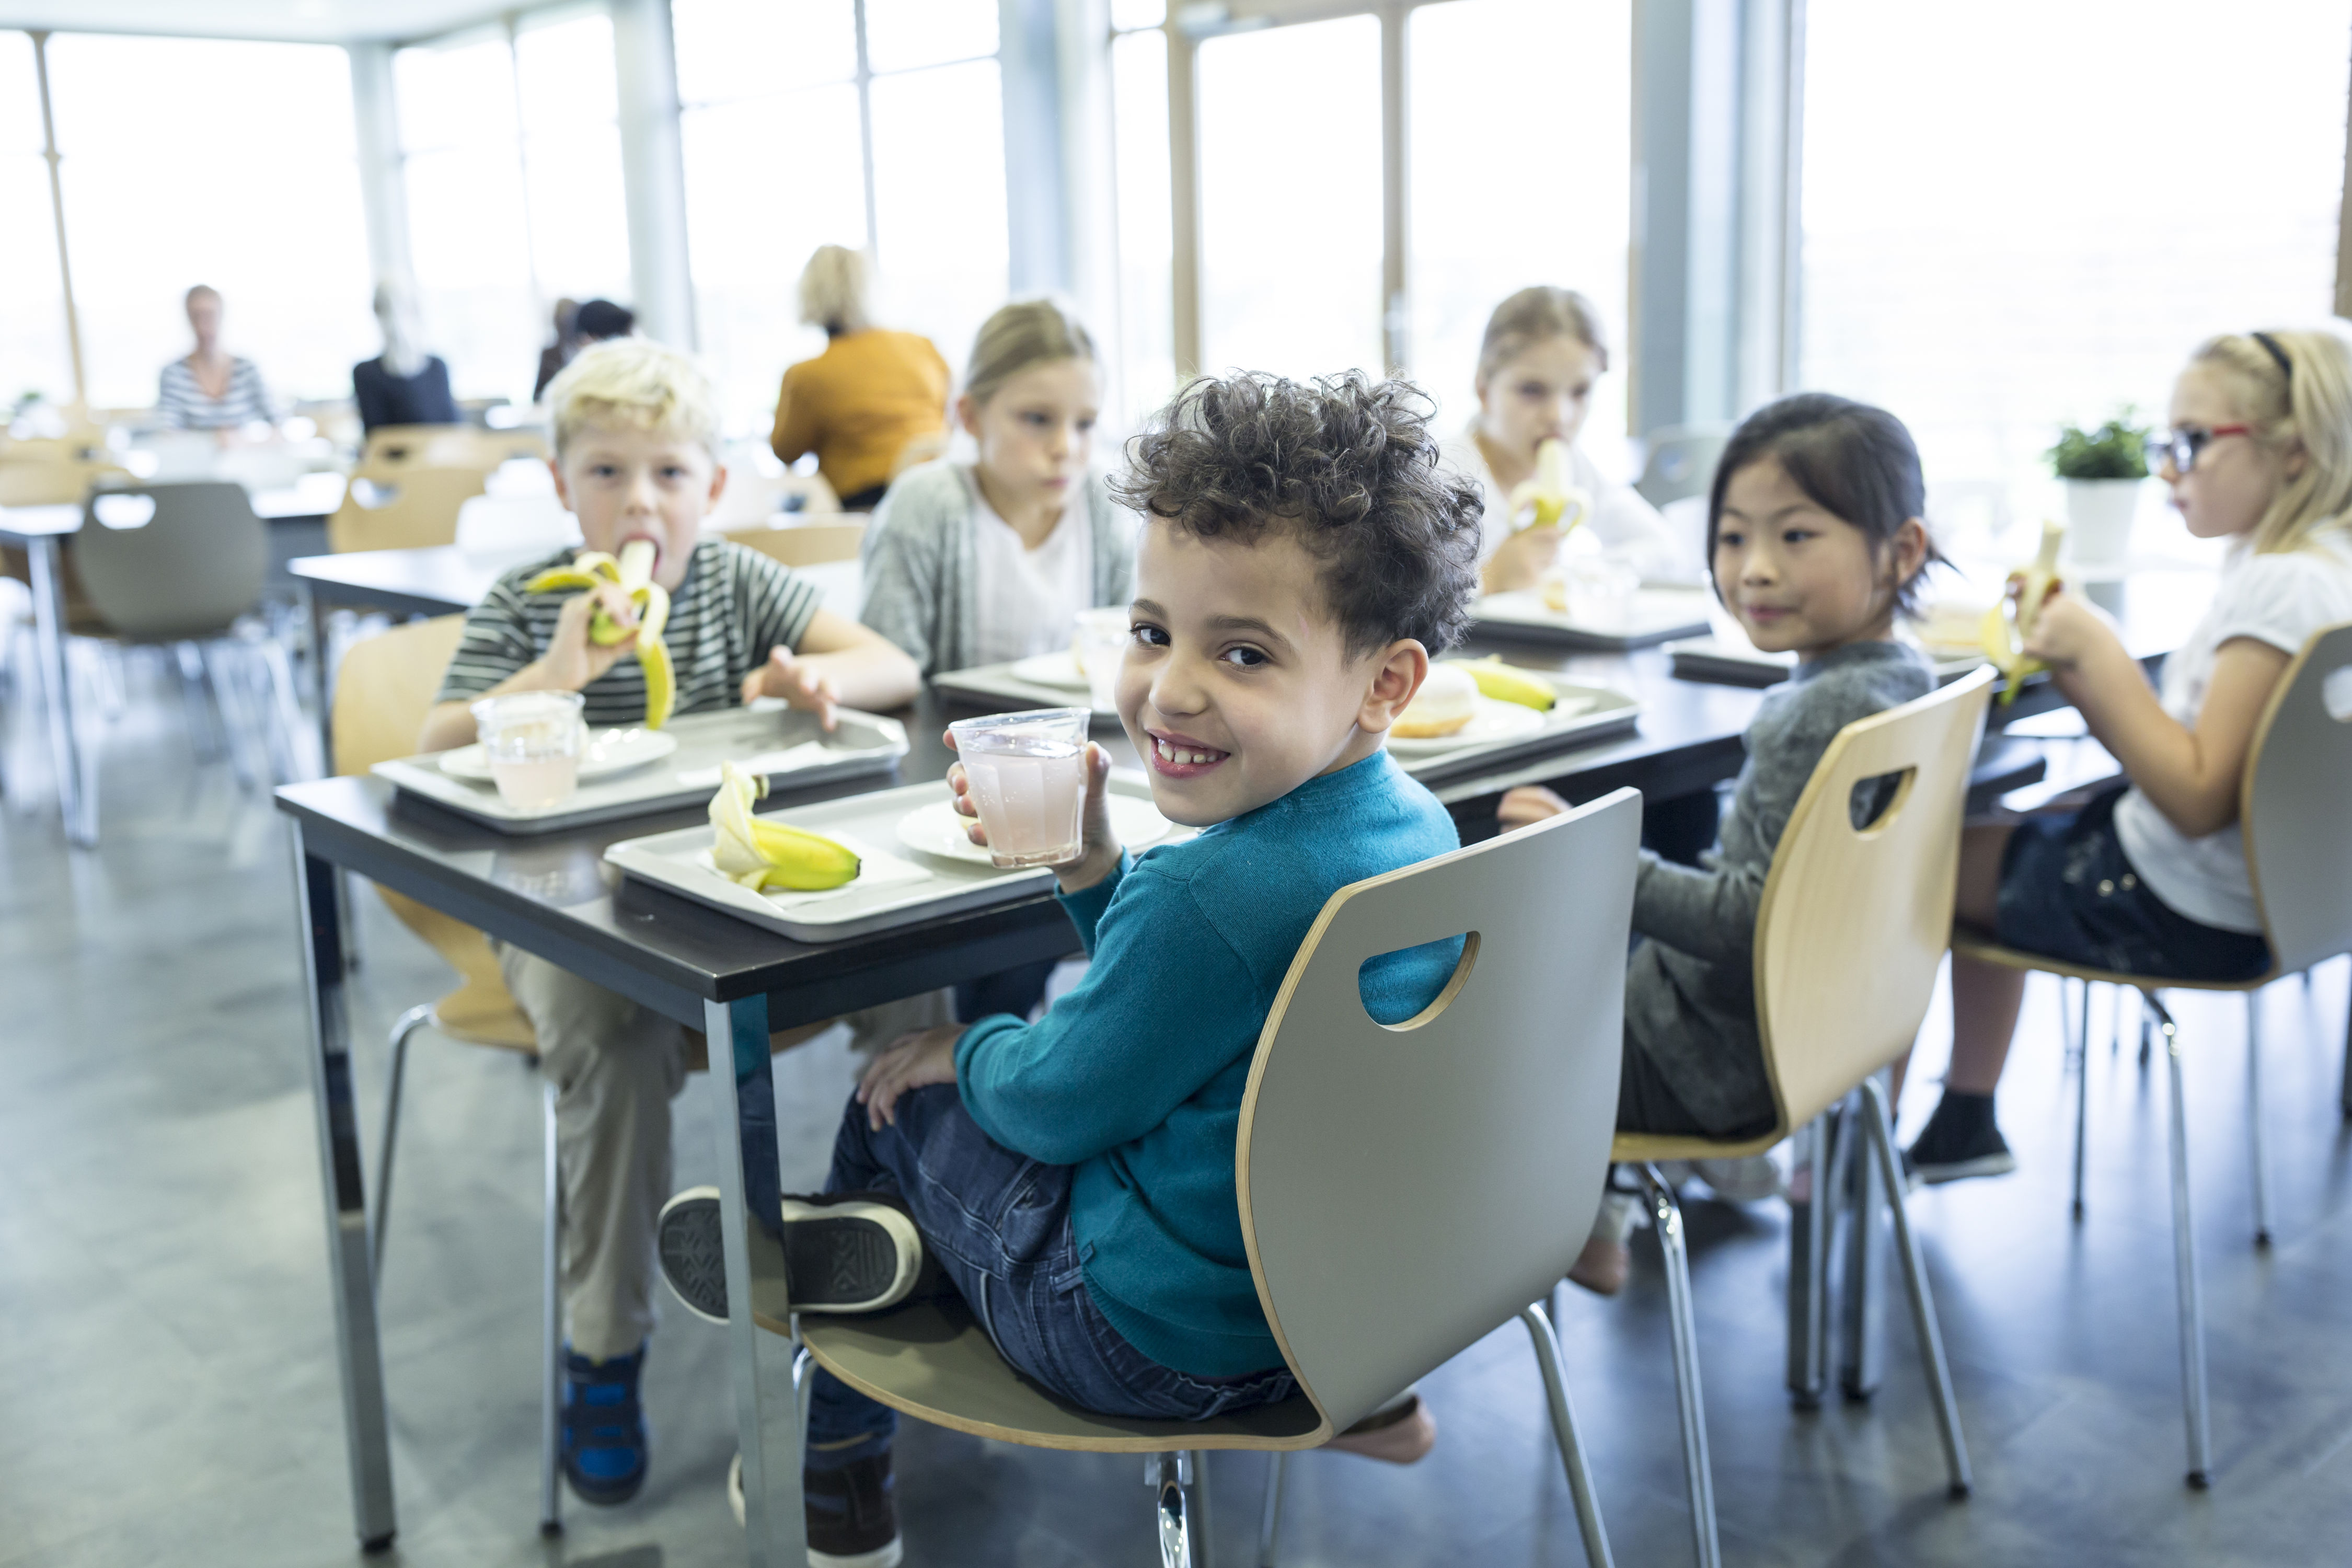 Austin Student Raises $5,700 (and Counting!) to Help Youngsters Pay Off School Lunch Debt